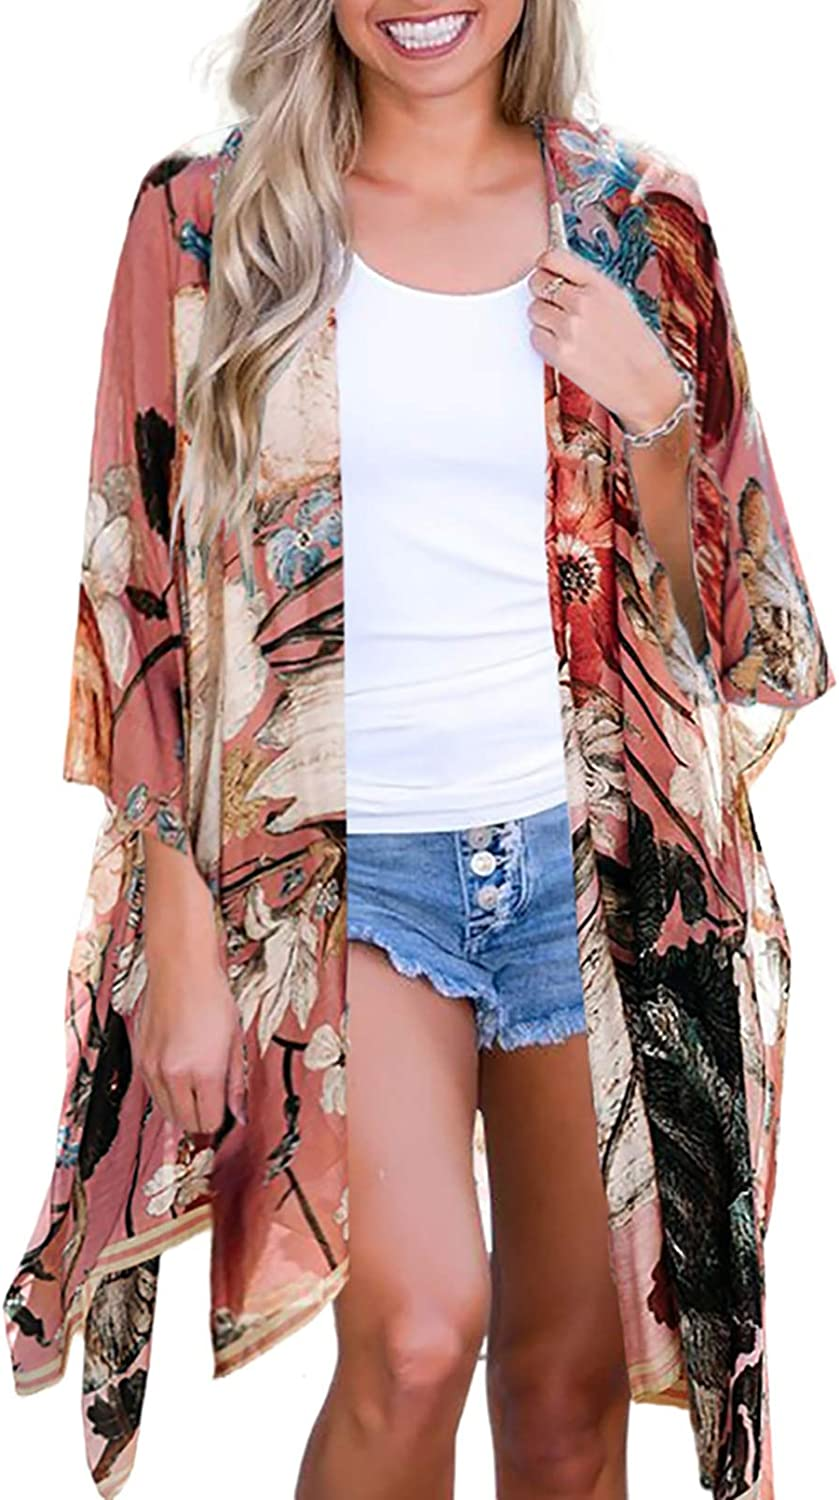 AZOKOE Women Floral Kimono Cardigans Casual Loose Open Front Swimsuit Cover Ups Tops